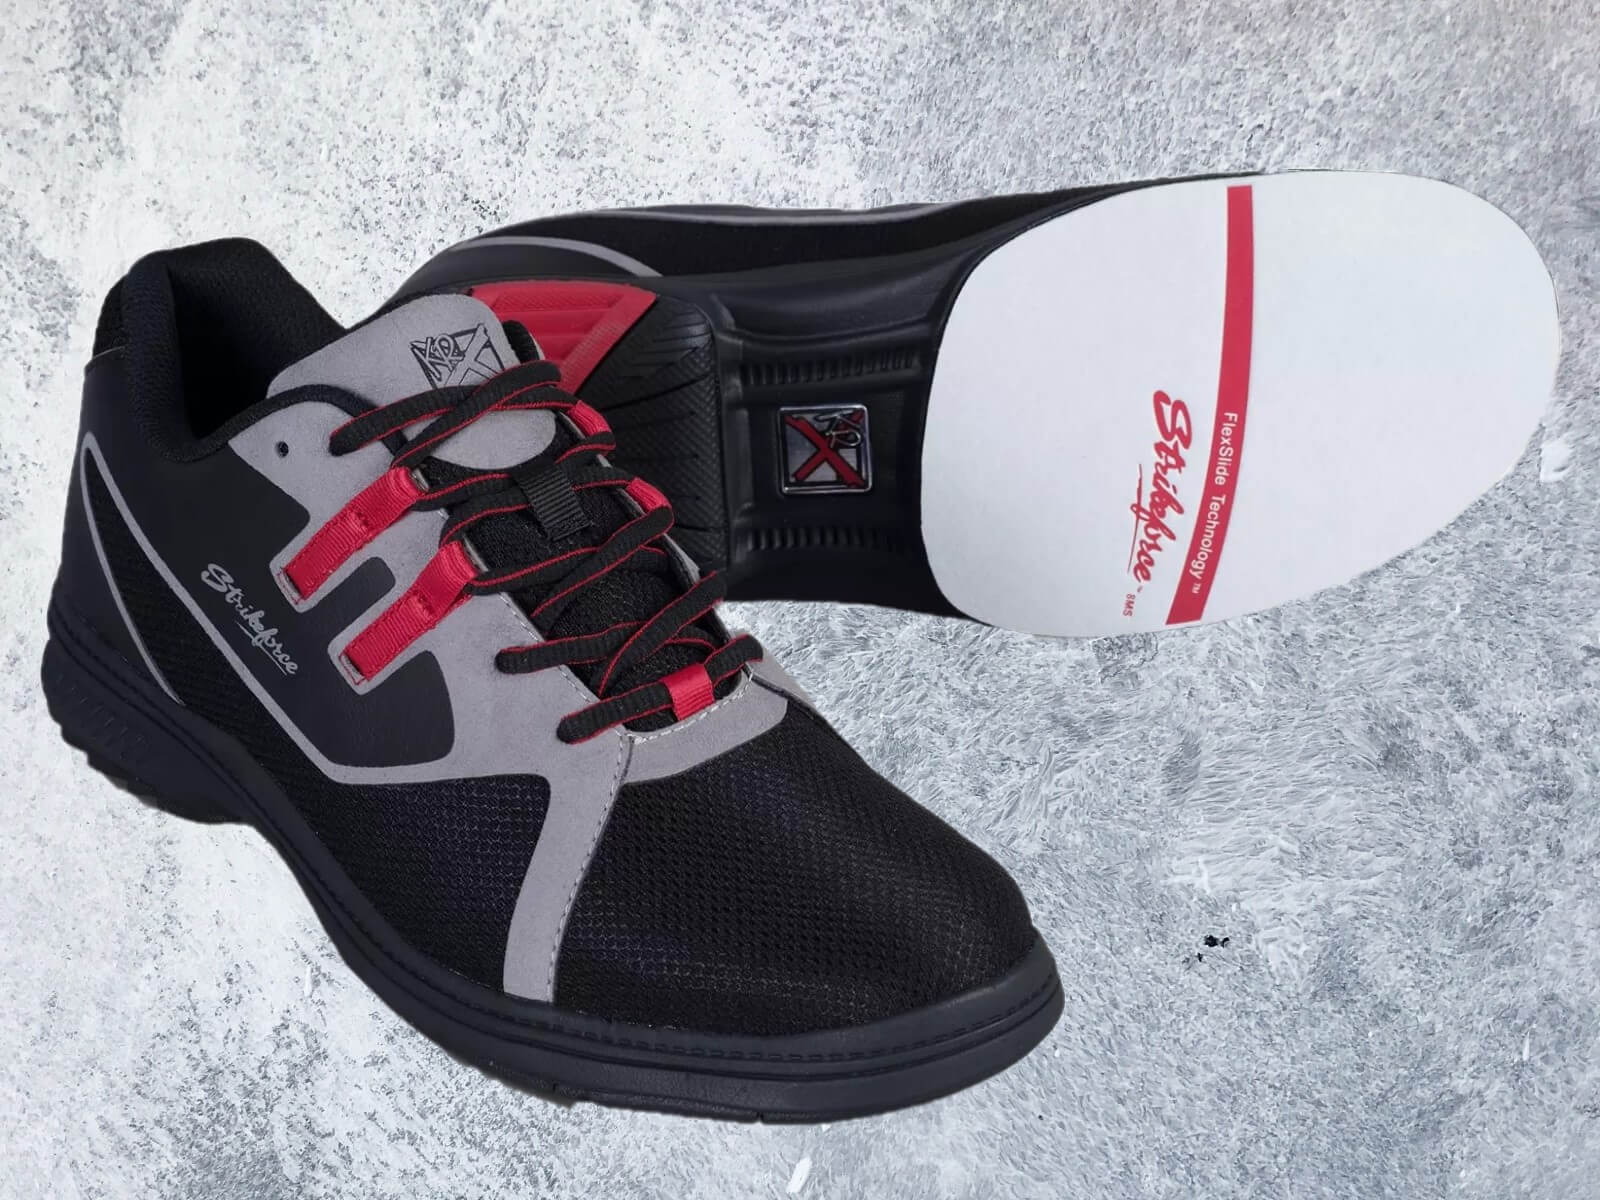 Pair of the KR Strikeforce Ignite shoes for wide feet